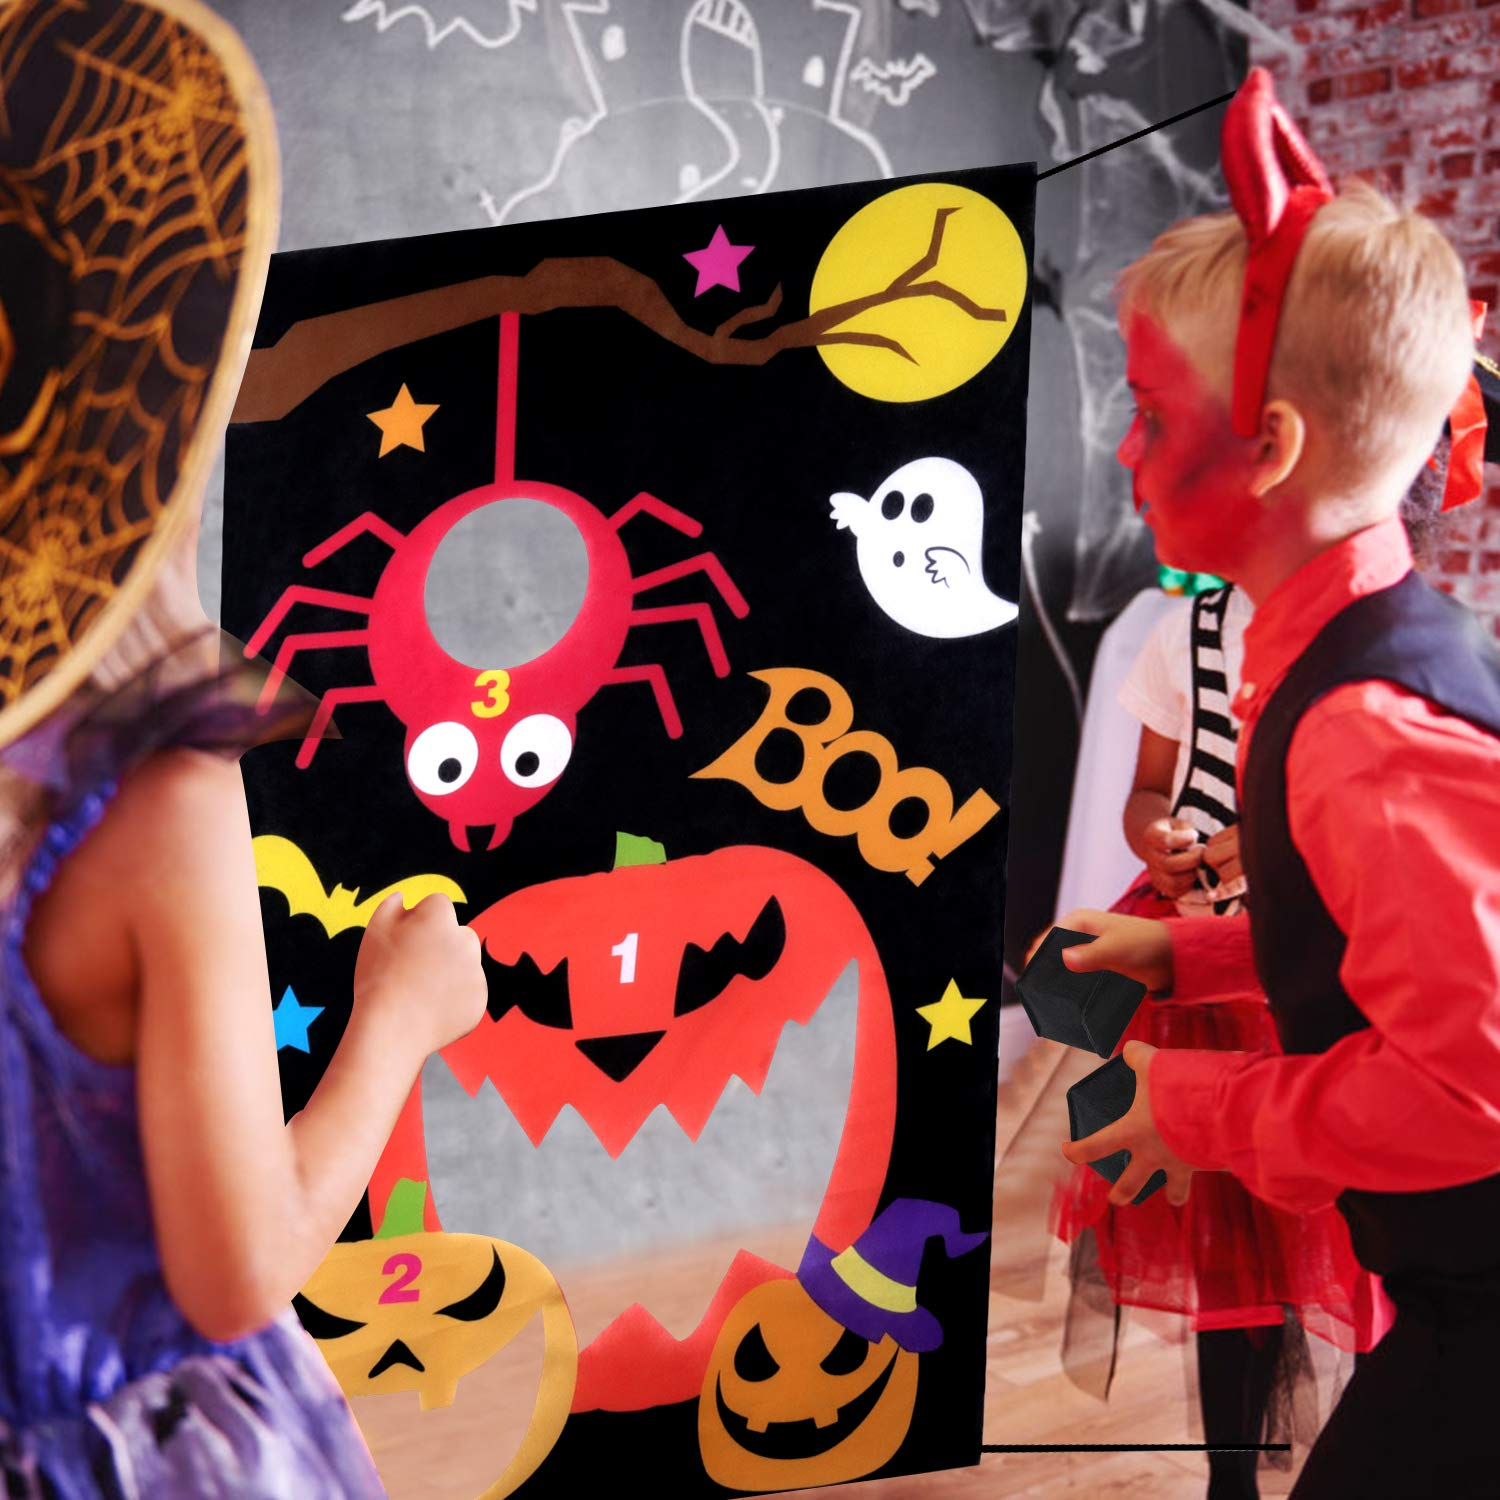 B bangcool Pumpkin Toss Game with 3 Bean Bags, Halloween Carnival Parties Games Outdoor Fun Acivities for Kids and Adults (Red)